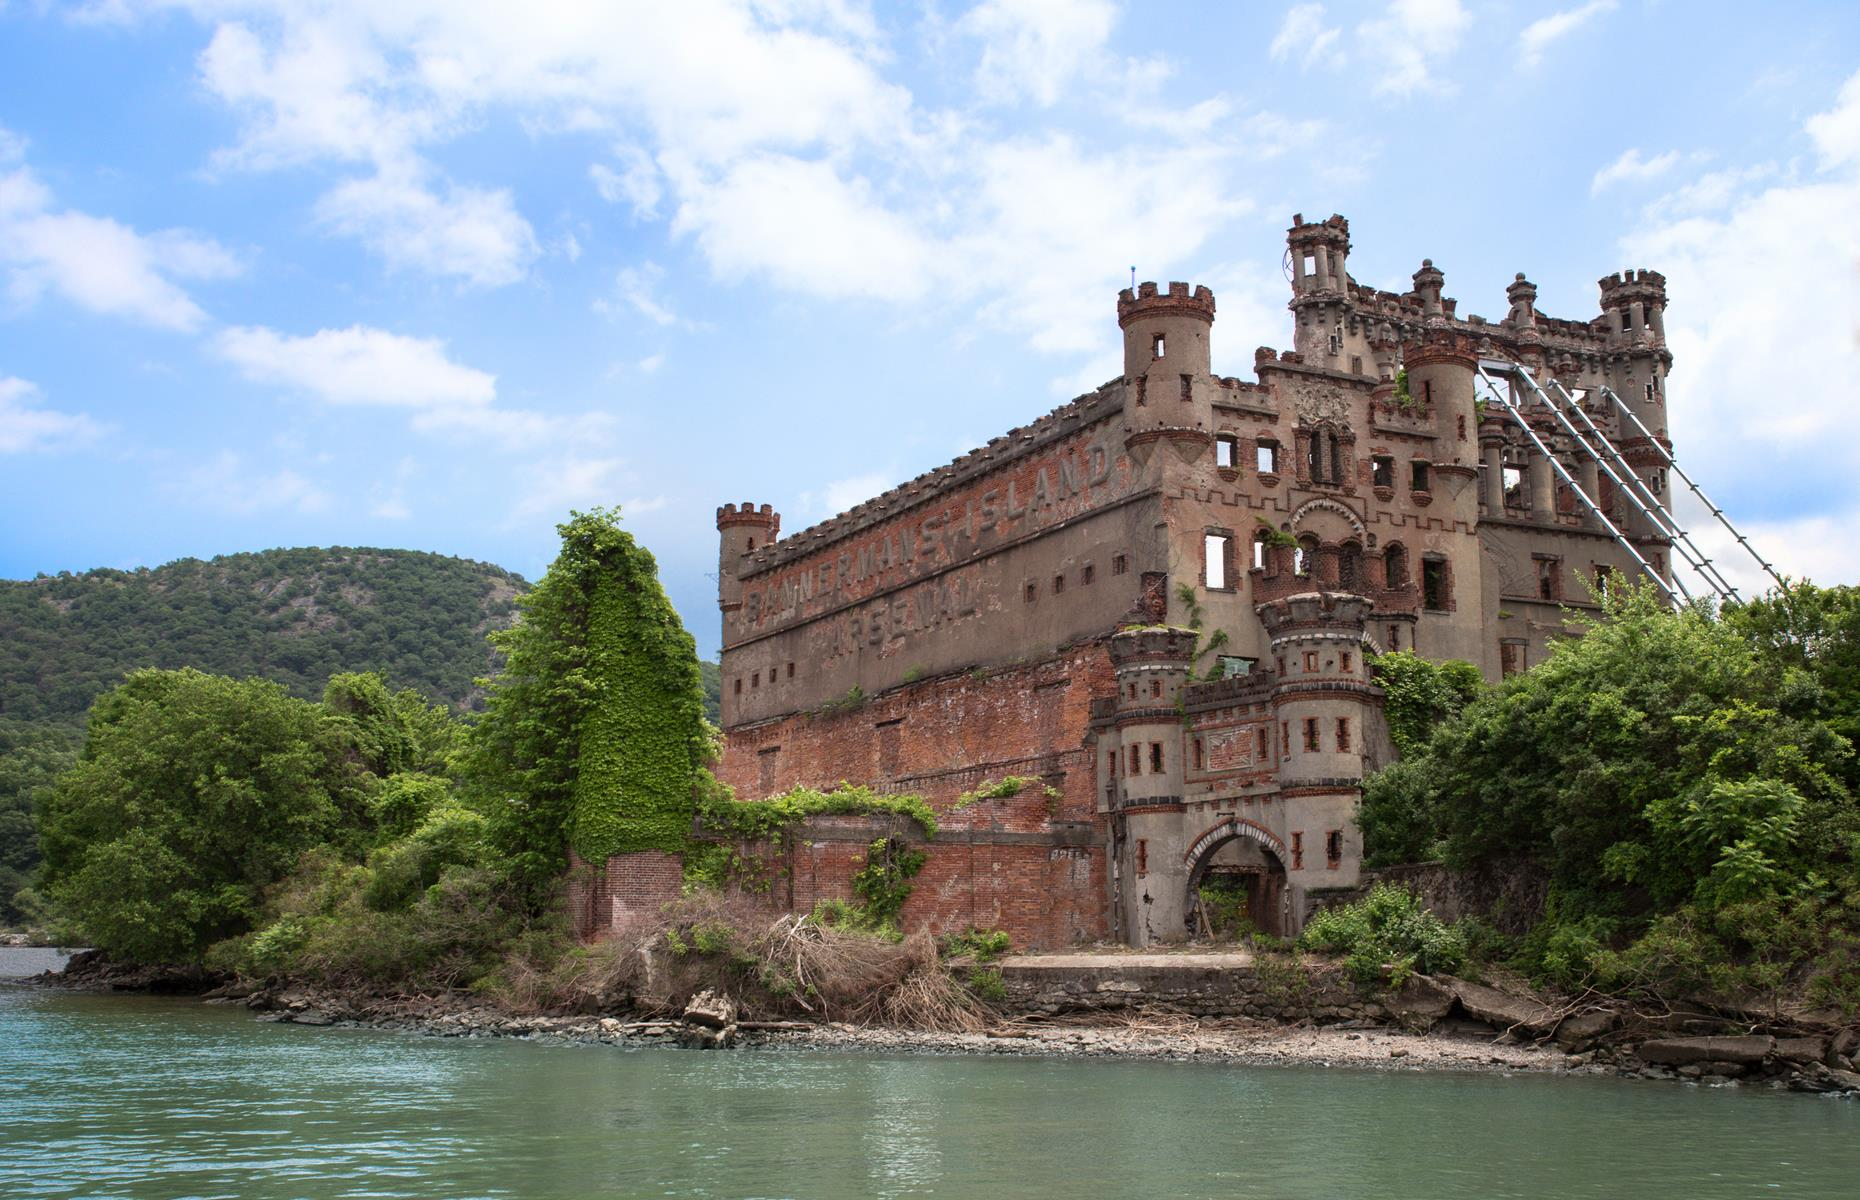 Slide 34 of 52: Standing guard over the Hudson River, some 60 miles (97km) north of New York City, is the abandoned Bannerman Castle. It's named after Scotsman Francis Bannerman VI, who owned a weaponry business and built this isolated island fortress in the early 1900s for use as an arsenal. Abandoned since the 1950s, the castle now stands in ruins, its turrets crumbling and greenery forcing its way through glassless windows. Still, it's a majestic site and a range of tours of the island are available.